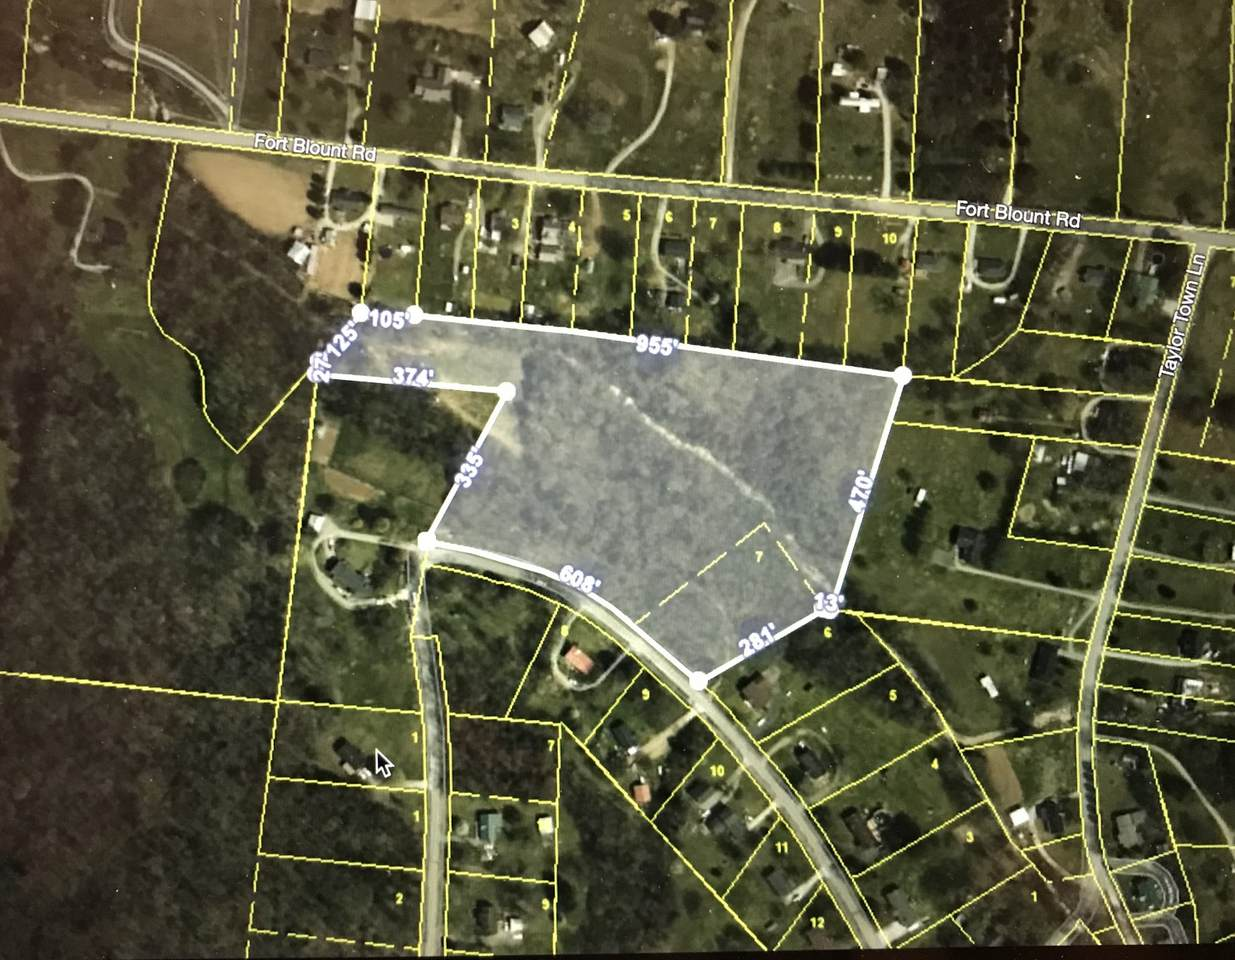 0 Fort Blount Rd - Photo 1